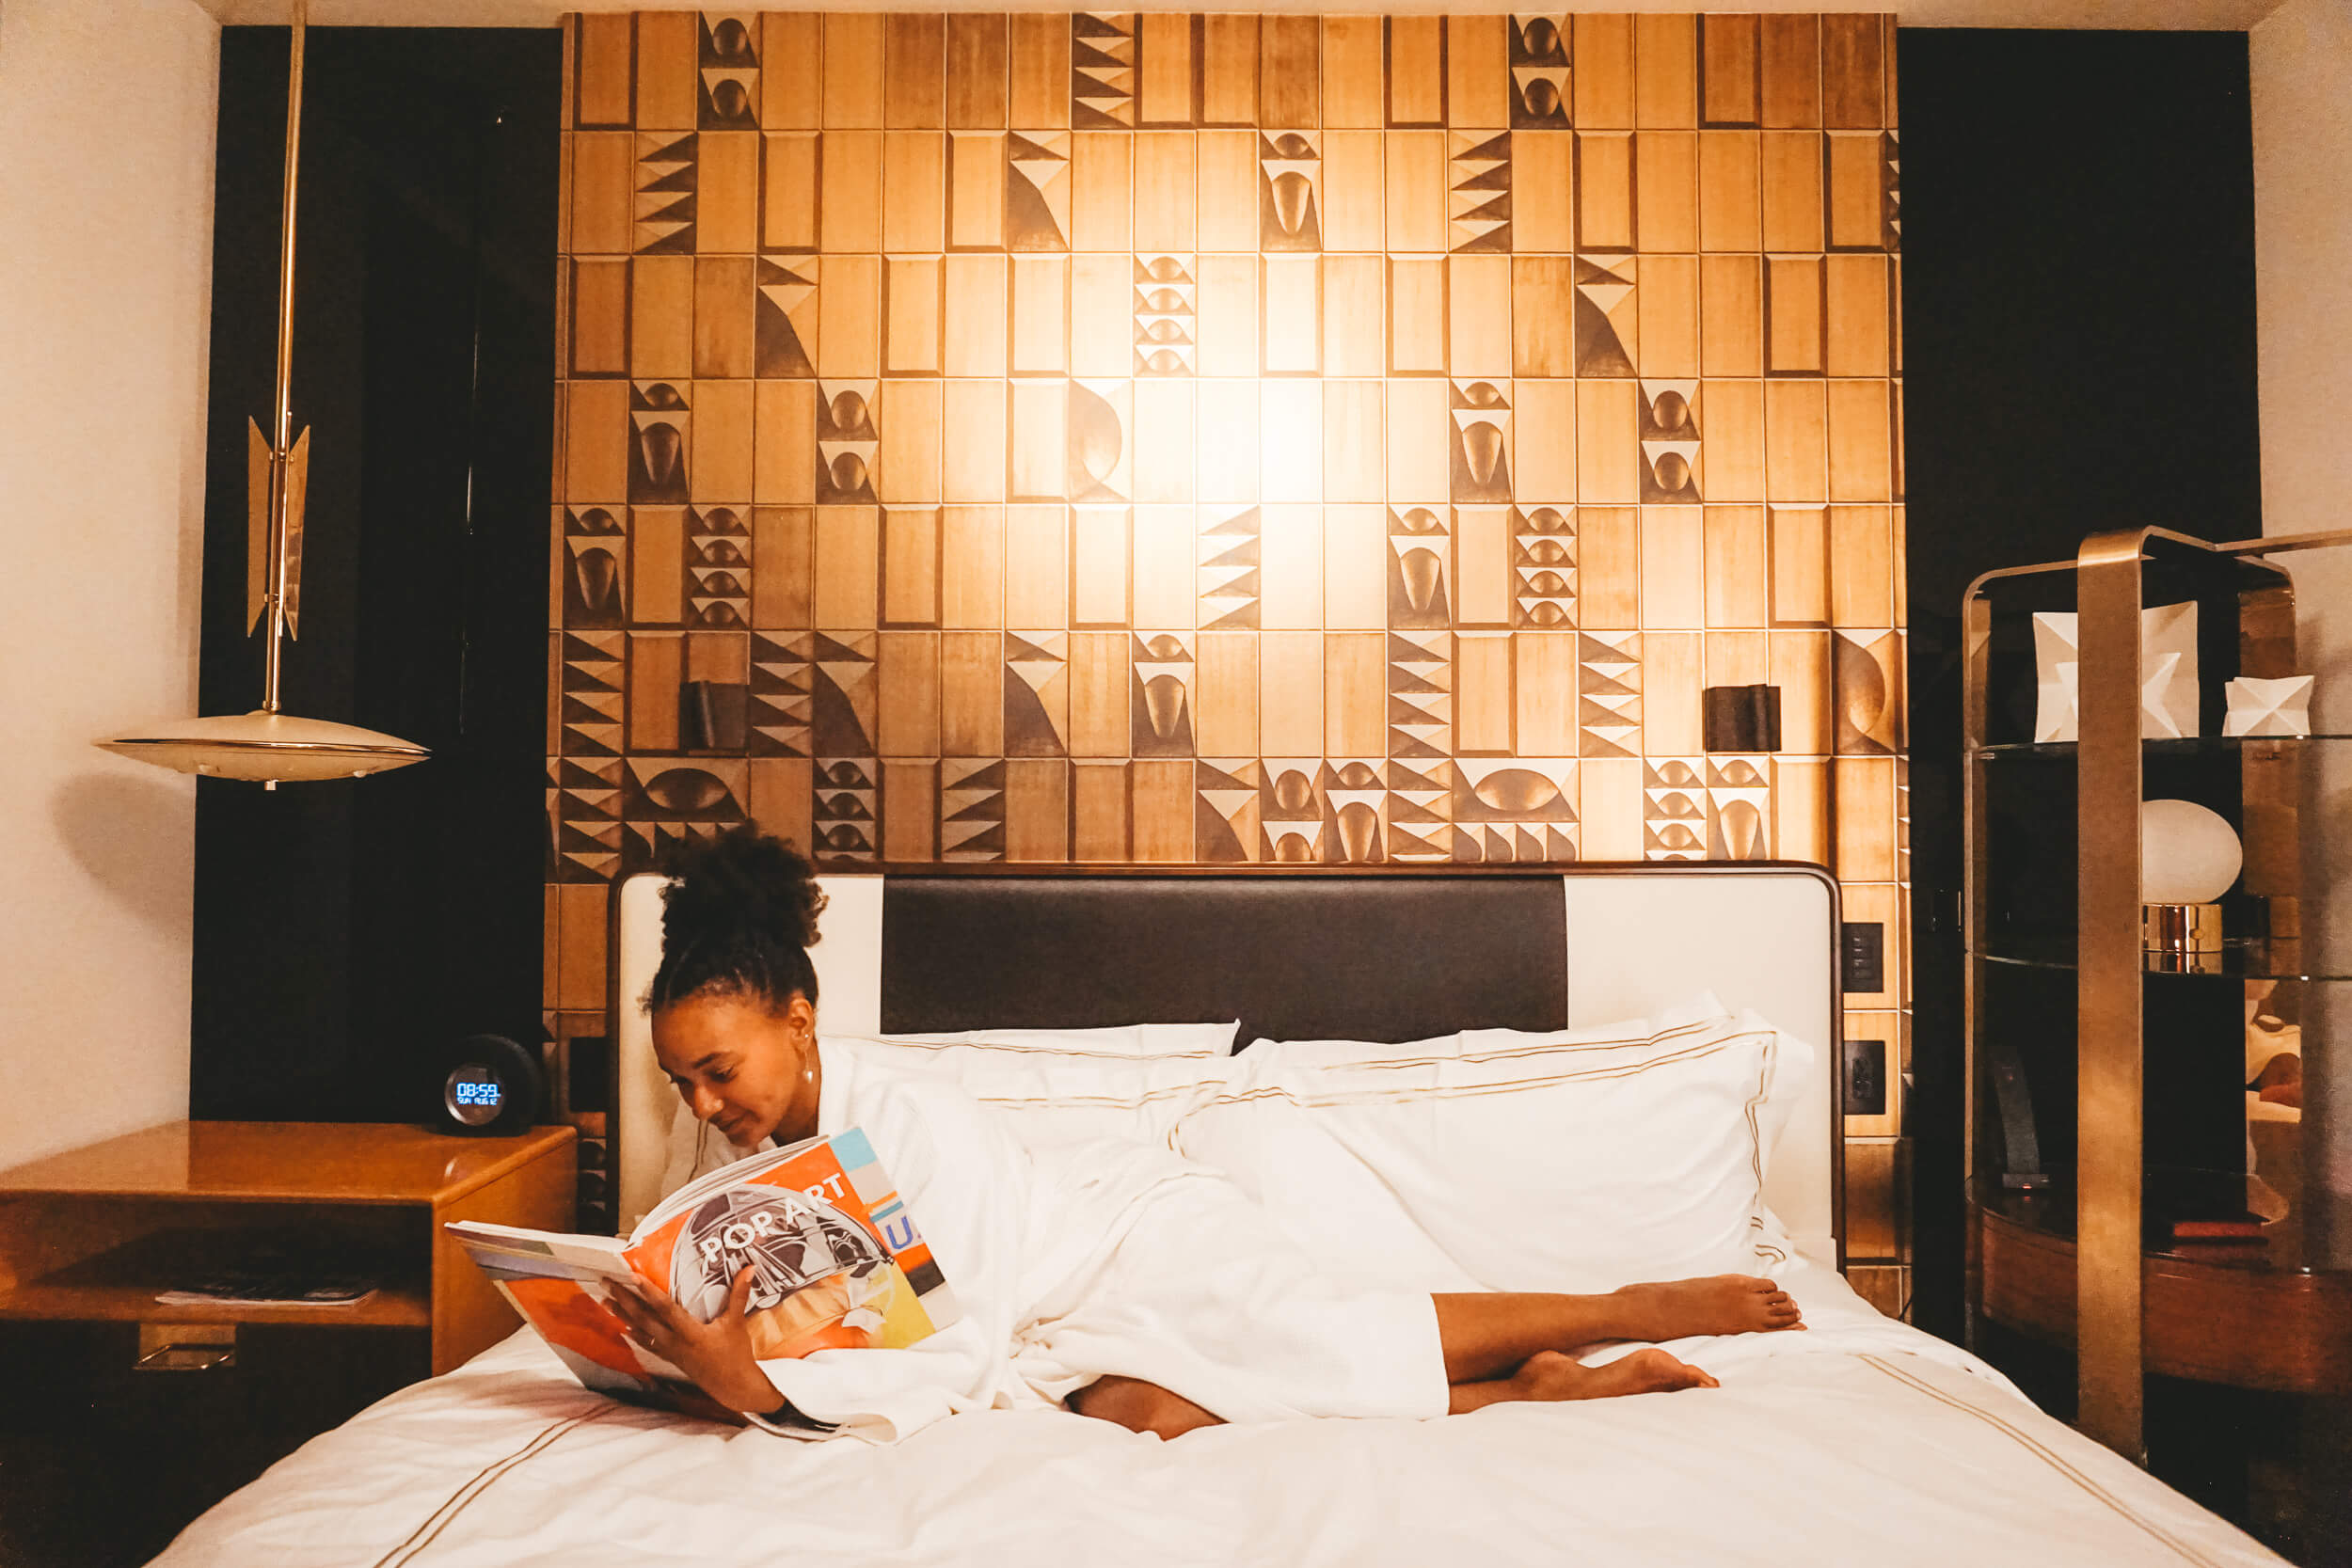 WOC traveler reading in bed at the Viceroy Chicago